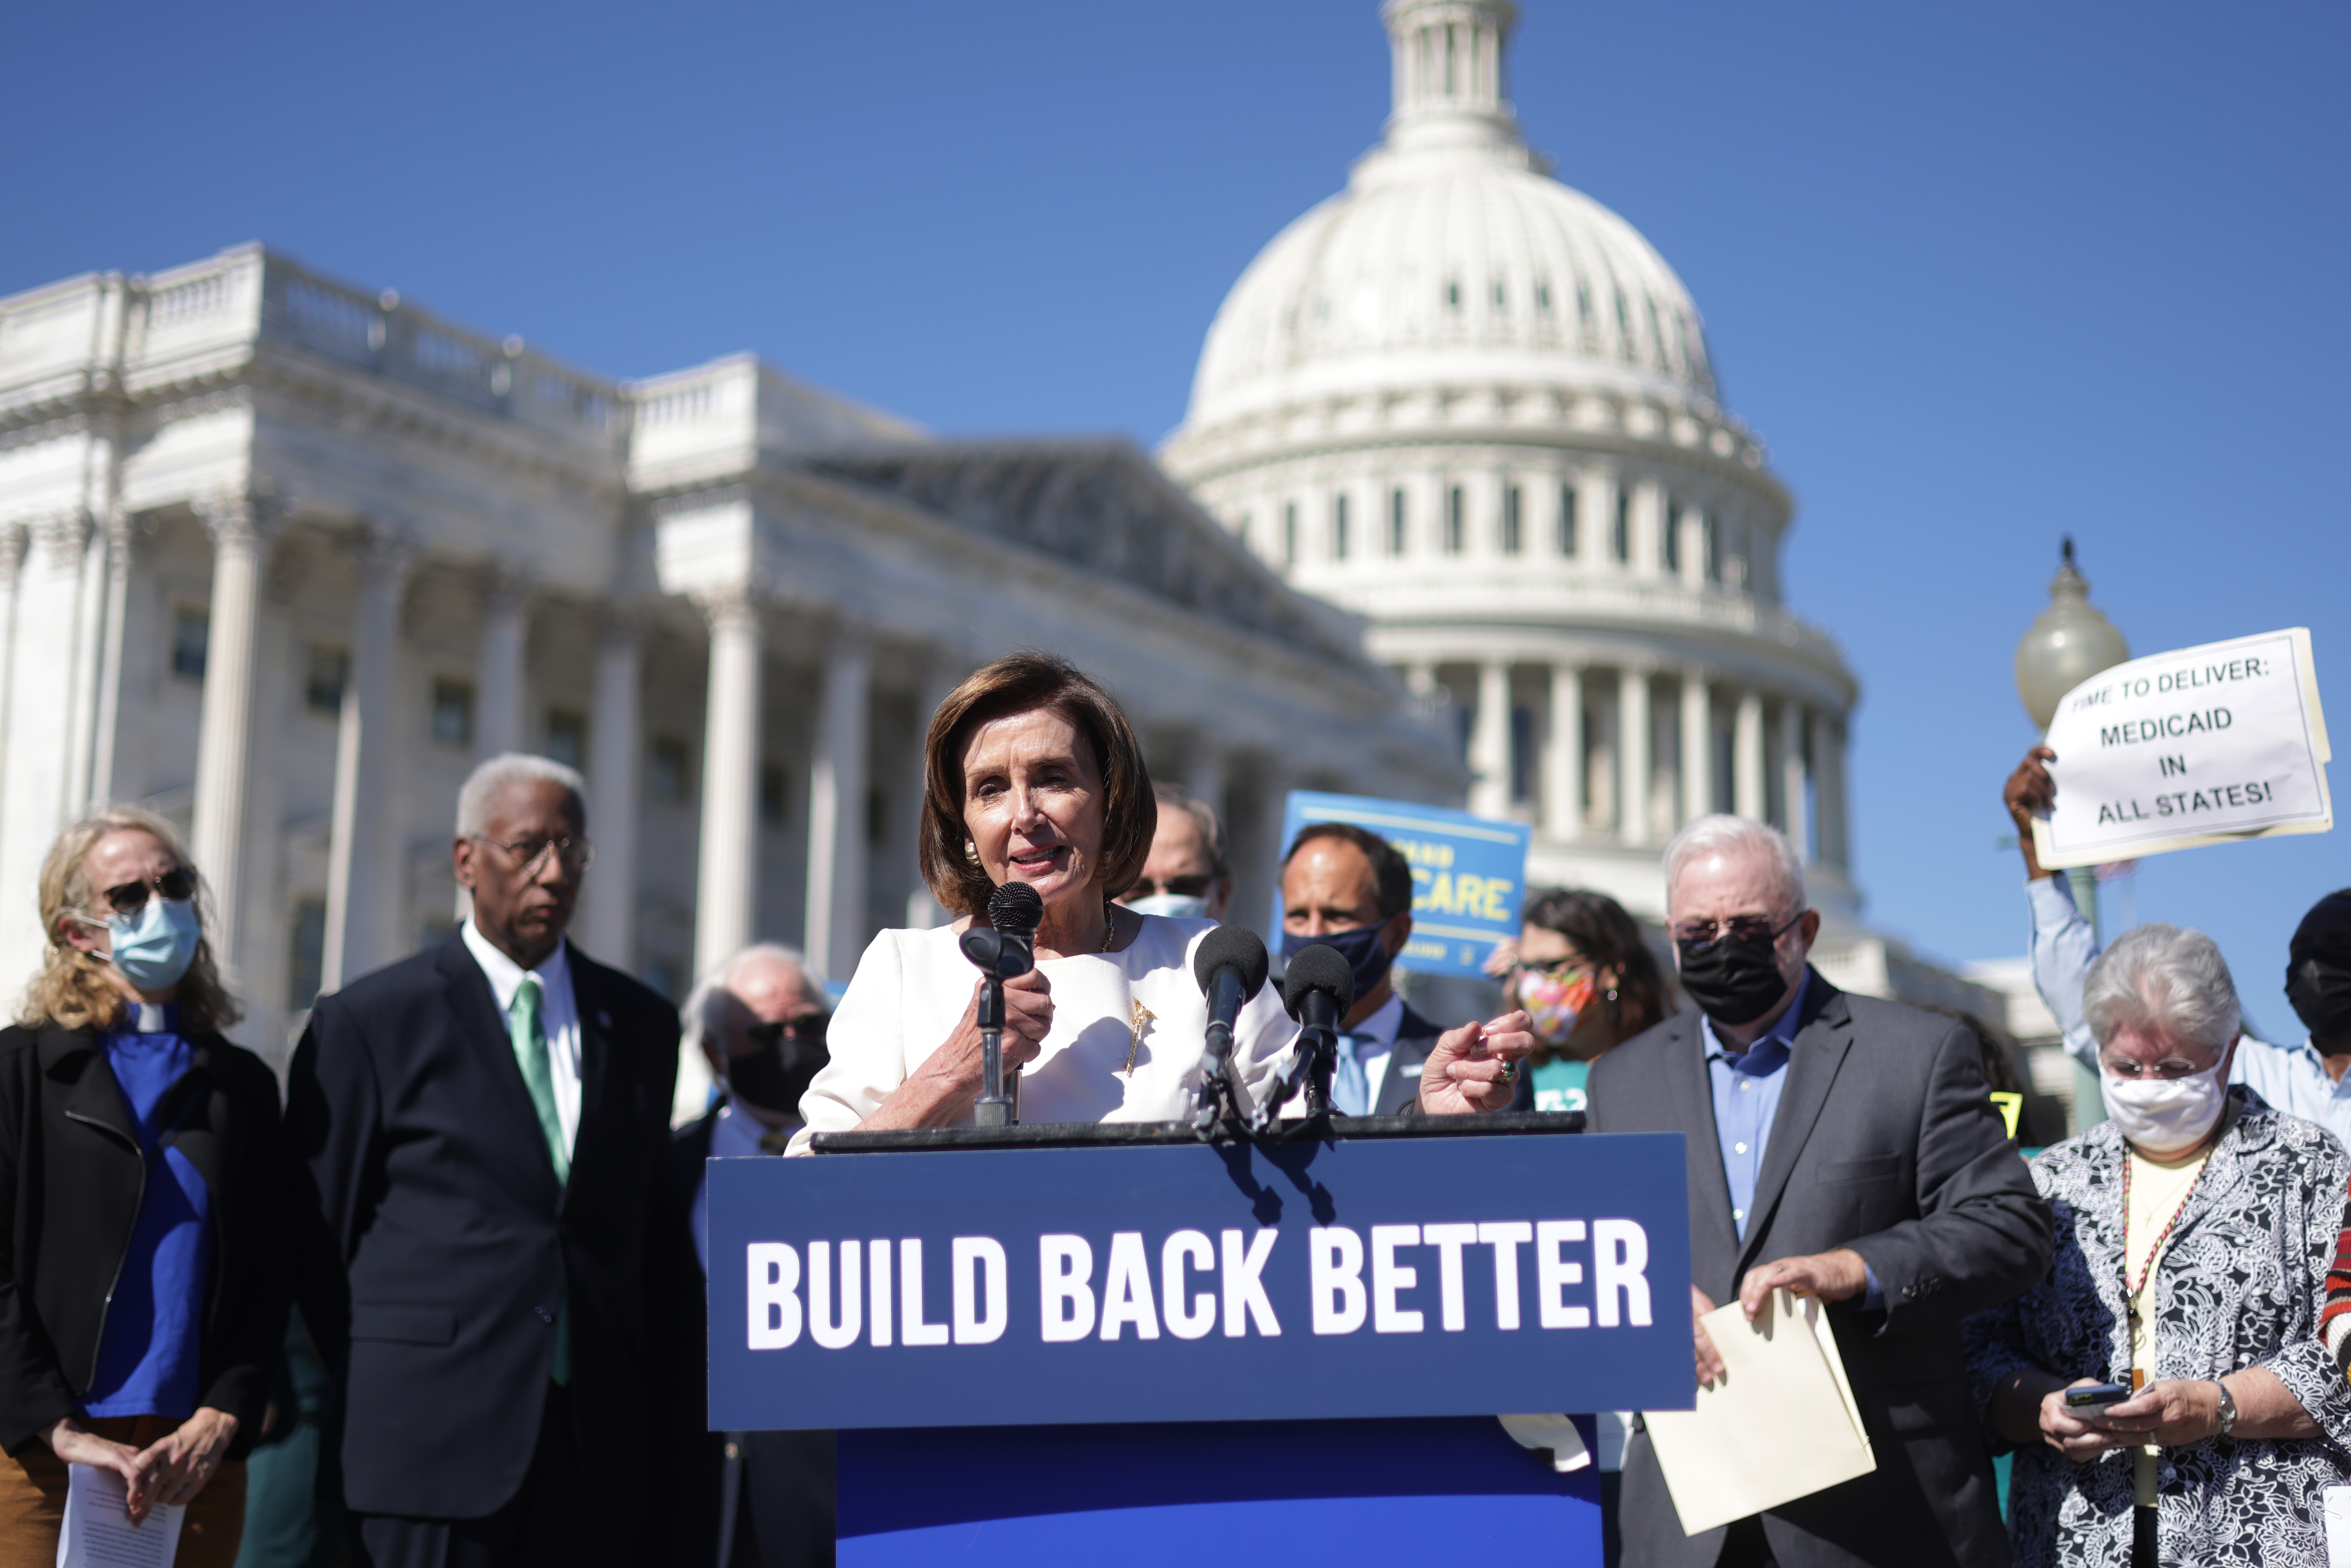 Speaker of the House Rep. Nancy Pelosi speaks as she joins religious leaders during a news conference outside the U.S. Capitol October 20, 2021 in Washington, DC.